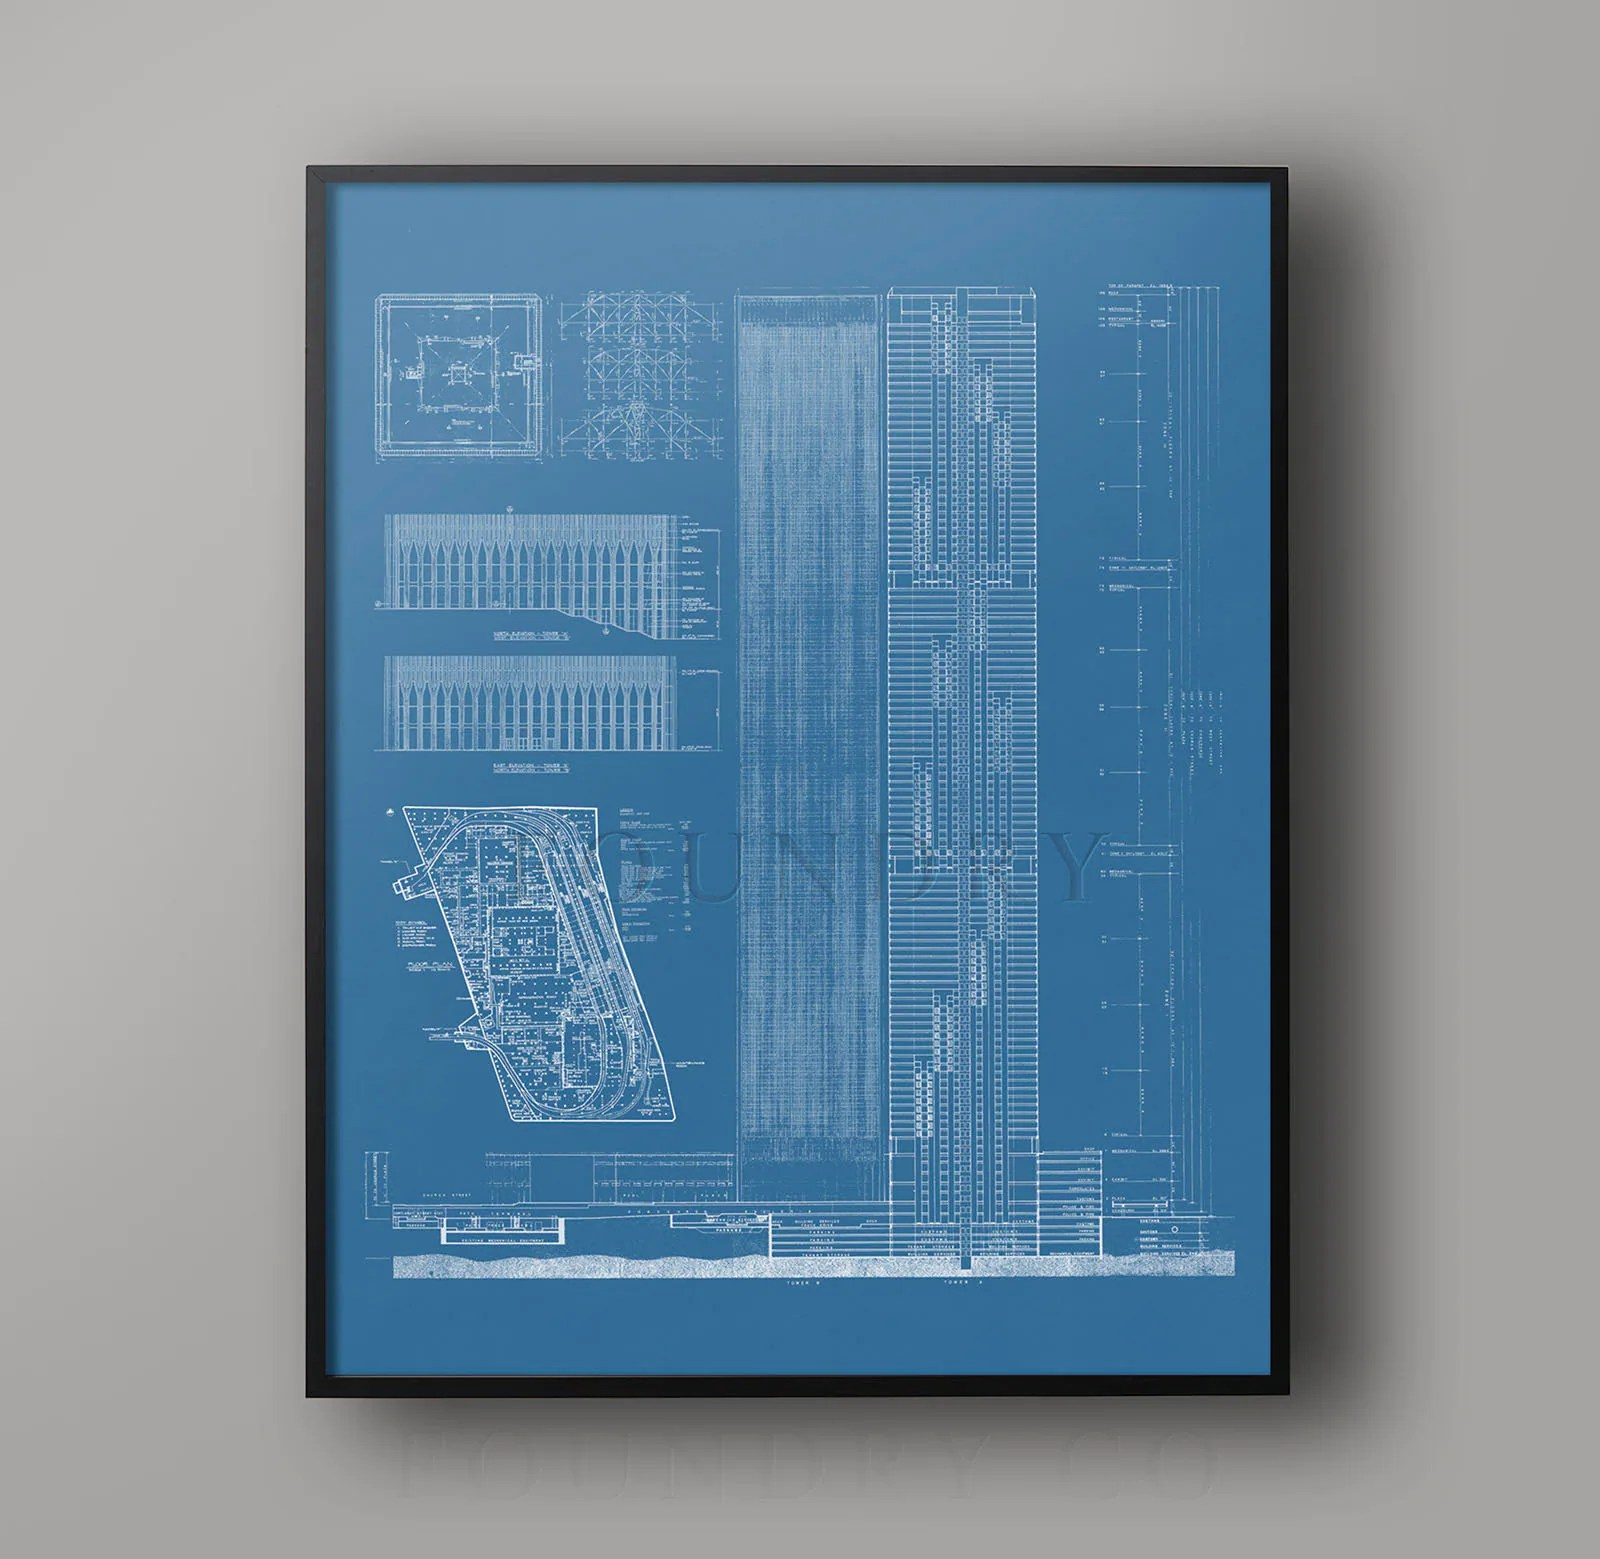 Vintage Architectural Blueprints World Trade Center Blueprint Vintage Nyc Blueprints Of World Trade Center Architecture Blueprint Building Plans Nyc Architecture